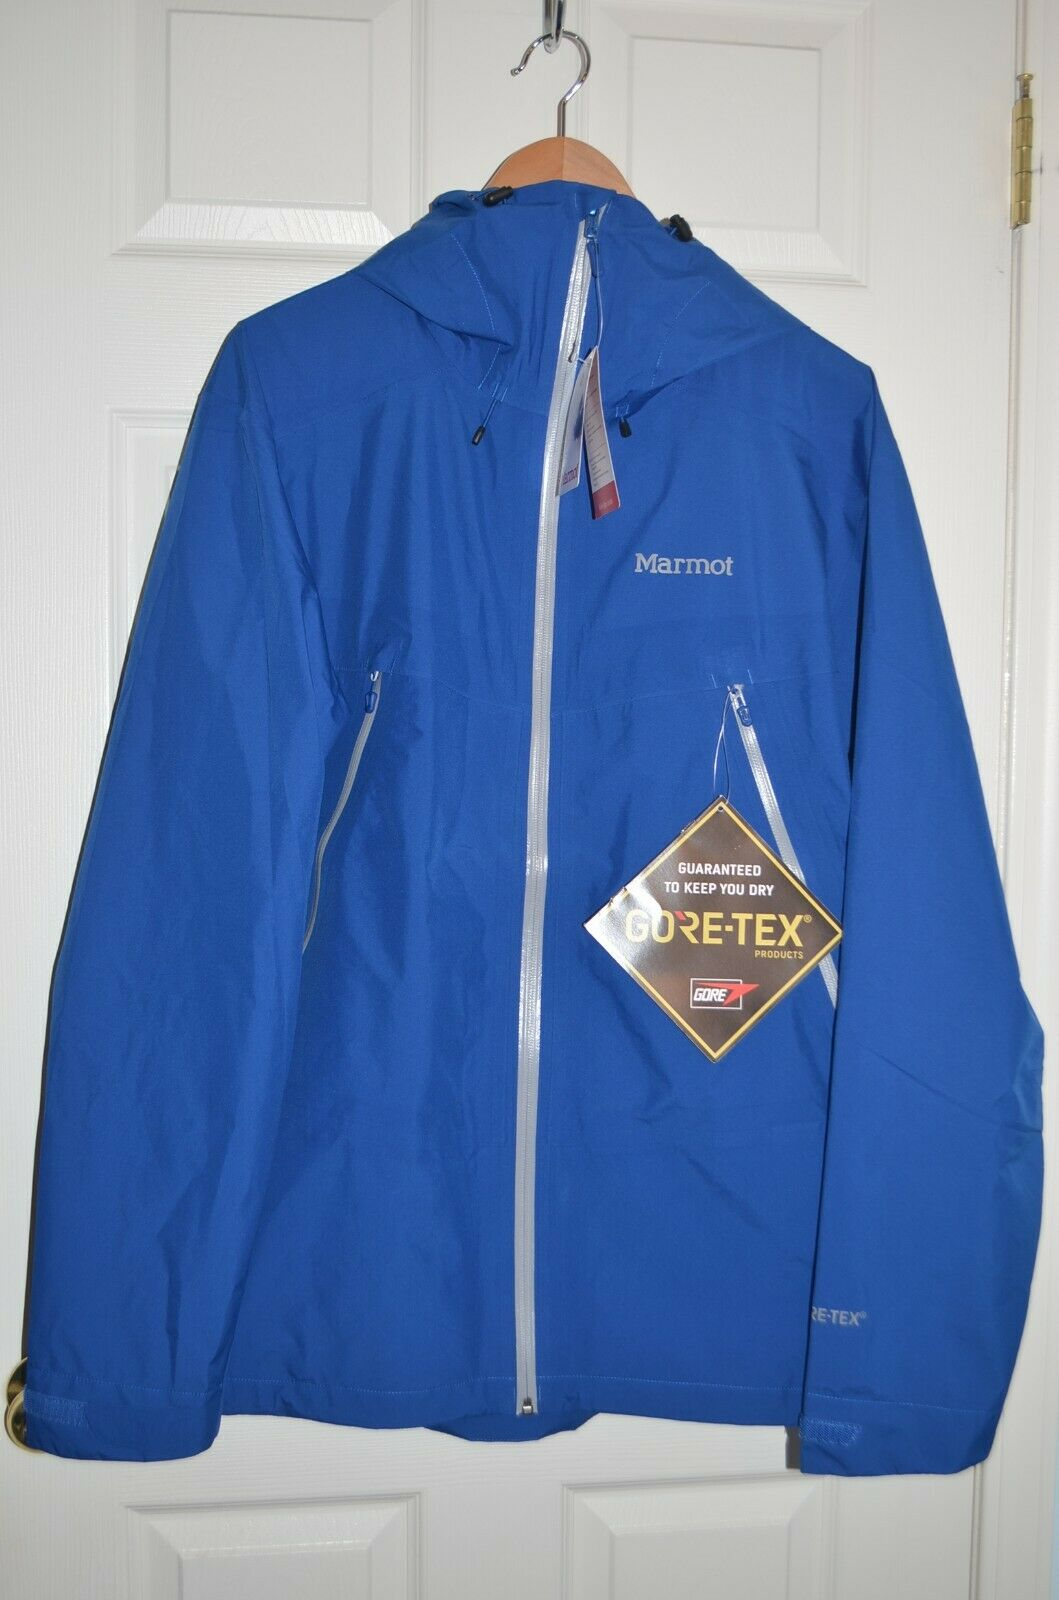 New! $225 MARMOT KNIFE'S EDGE Gore-Tex GTX Shell Jacket / 31